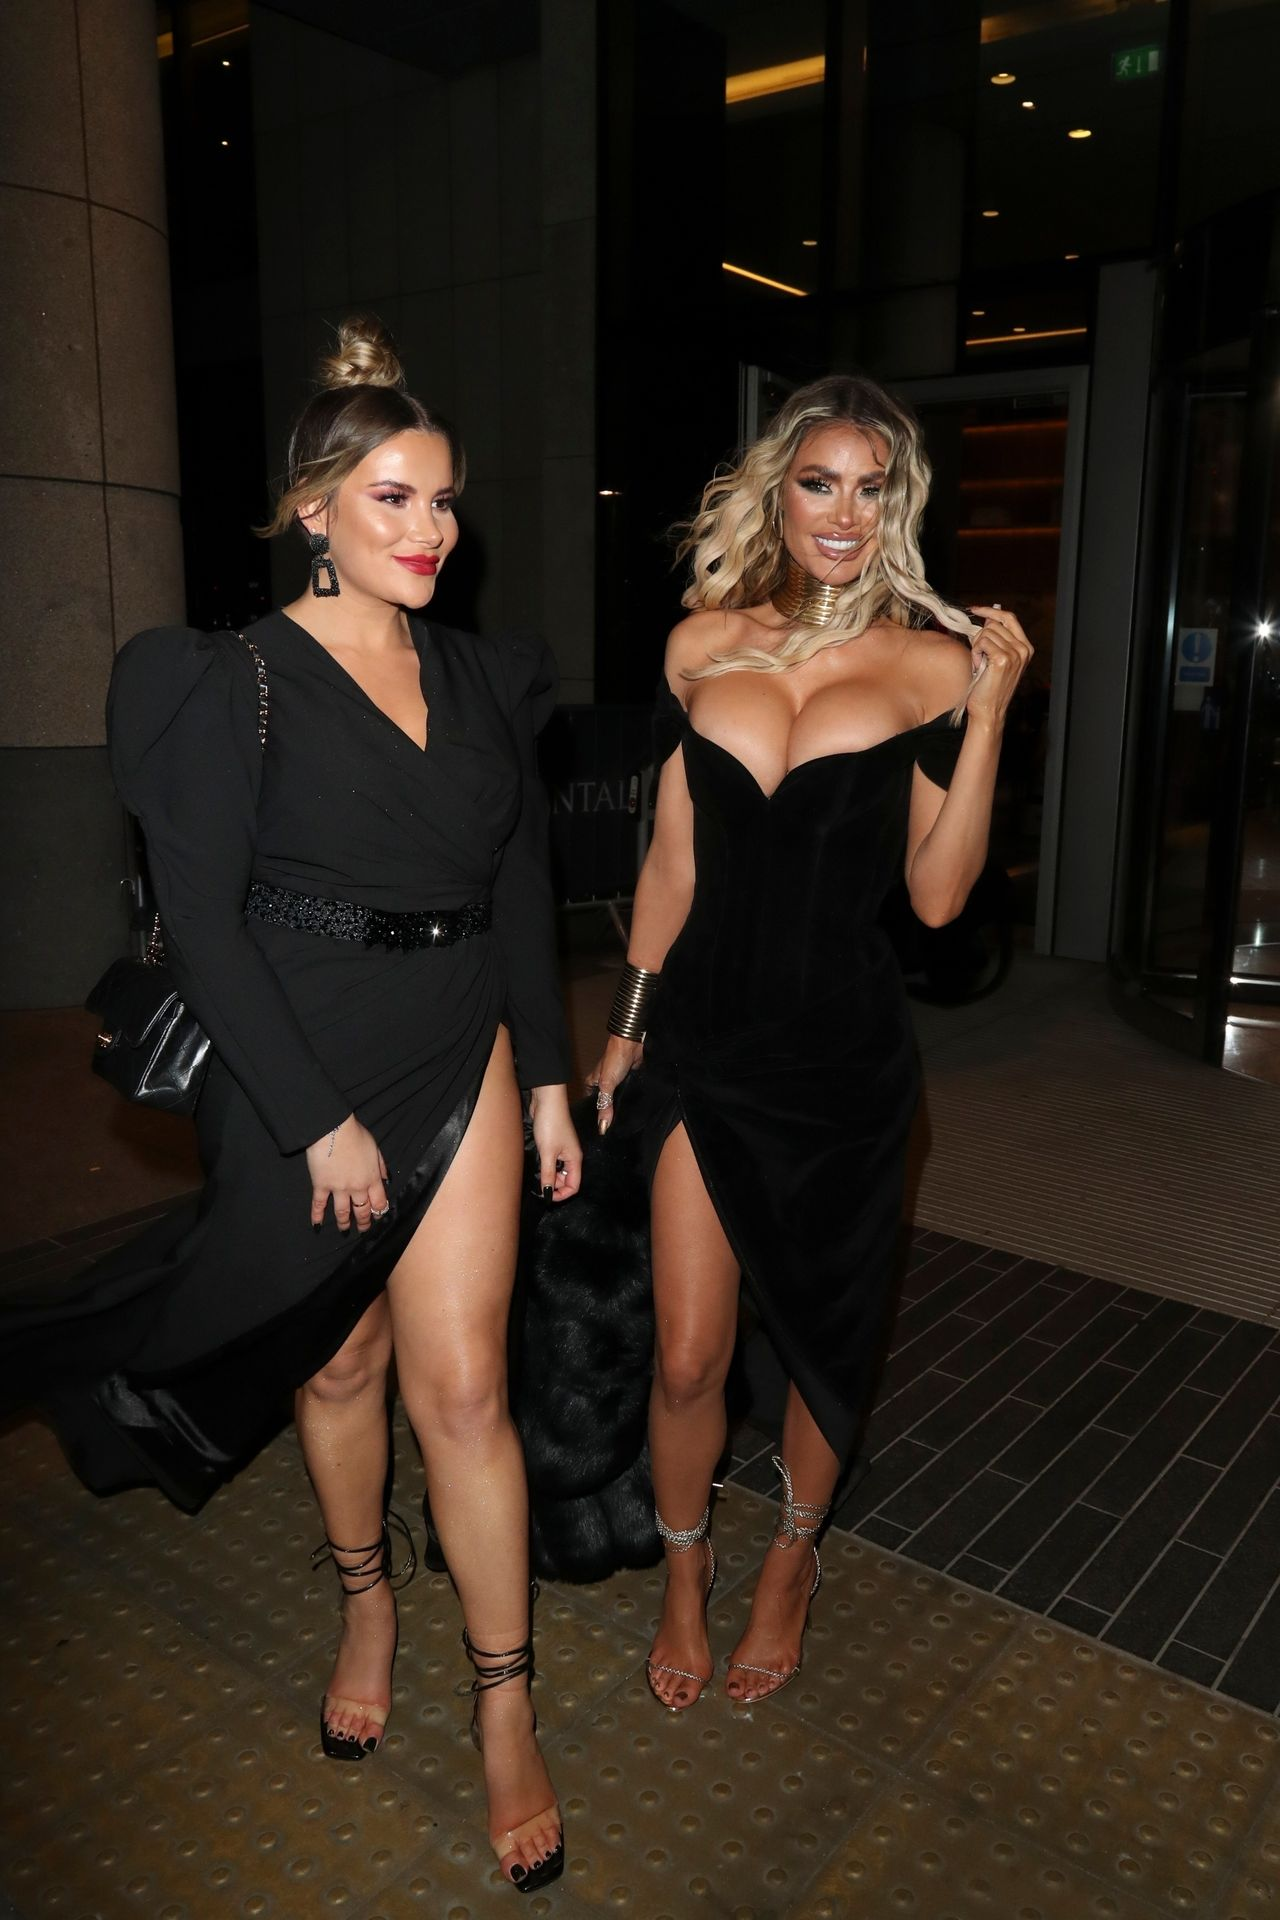 Chloe Sims Shows Off Her Boobs At The Nta Afterparty In London 0008